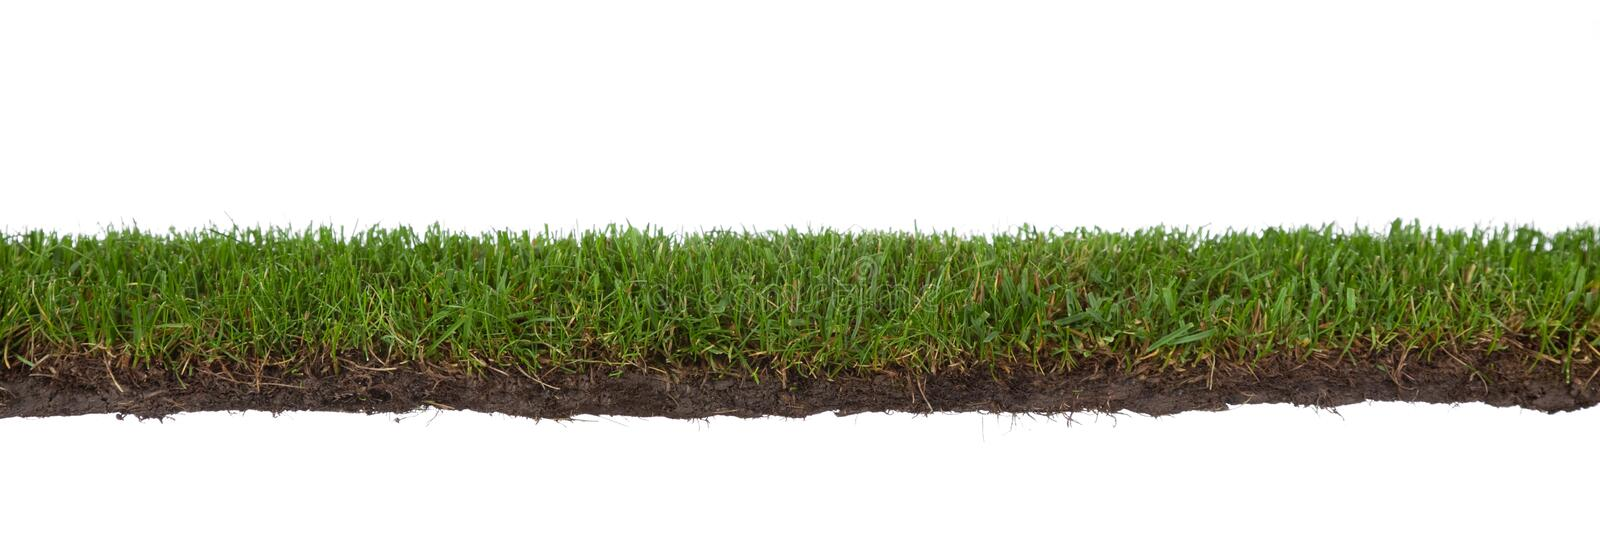 Download Grass with roots and dirt stock photo. Image of background - 11476510